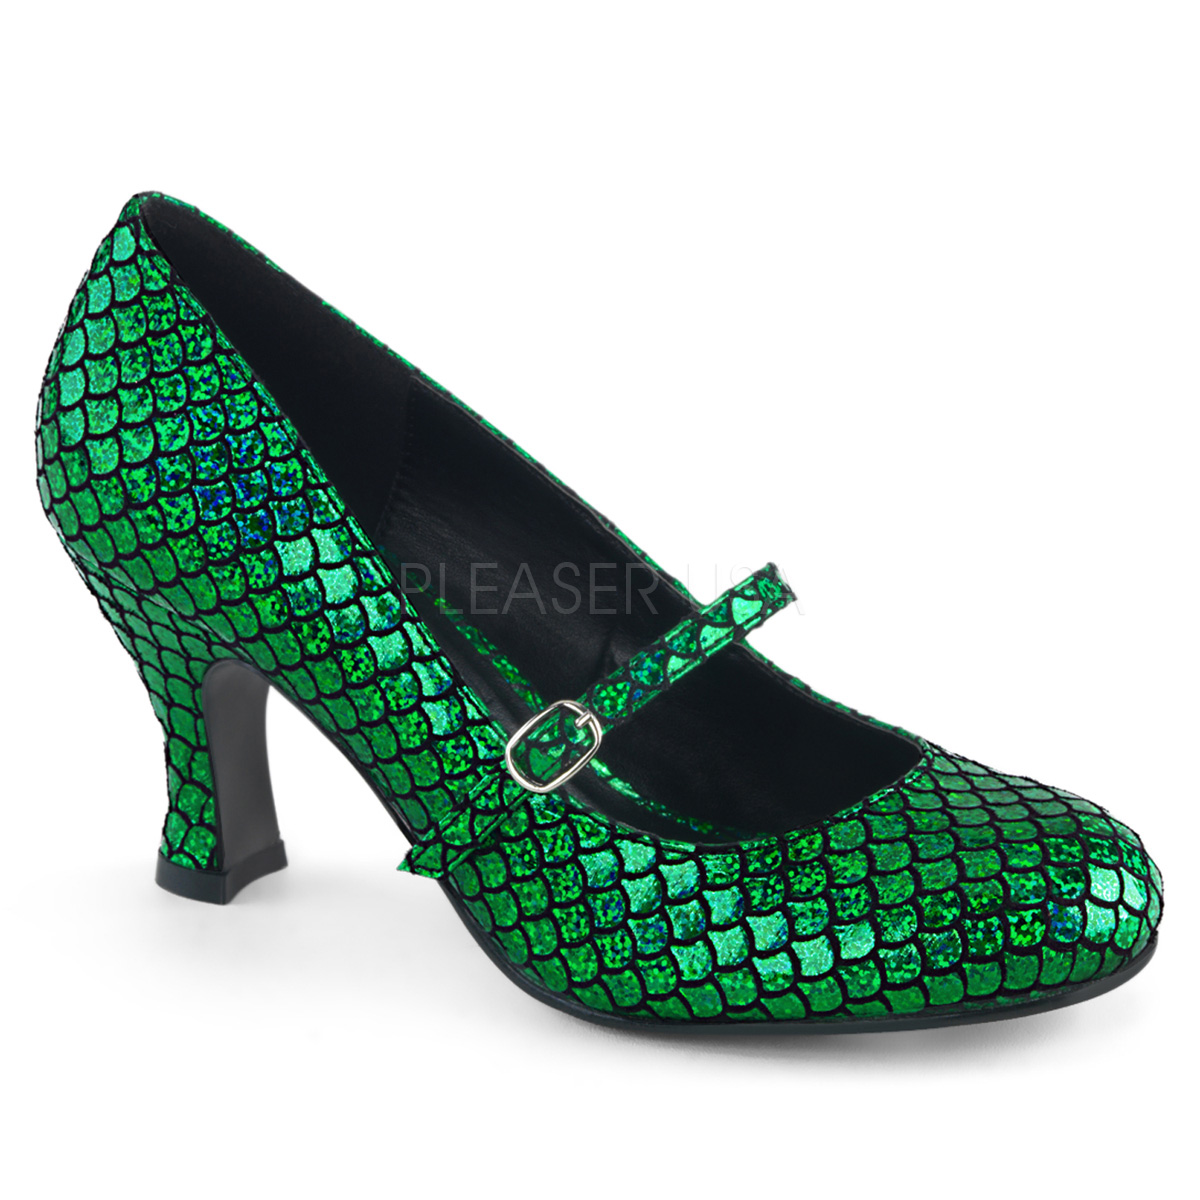 get online well known really comfortable Green 7,5 cm MERMAID-70 Pumps Shoes with Low Heels